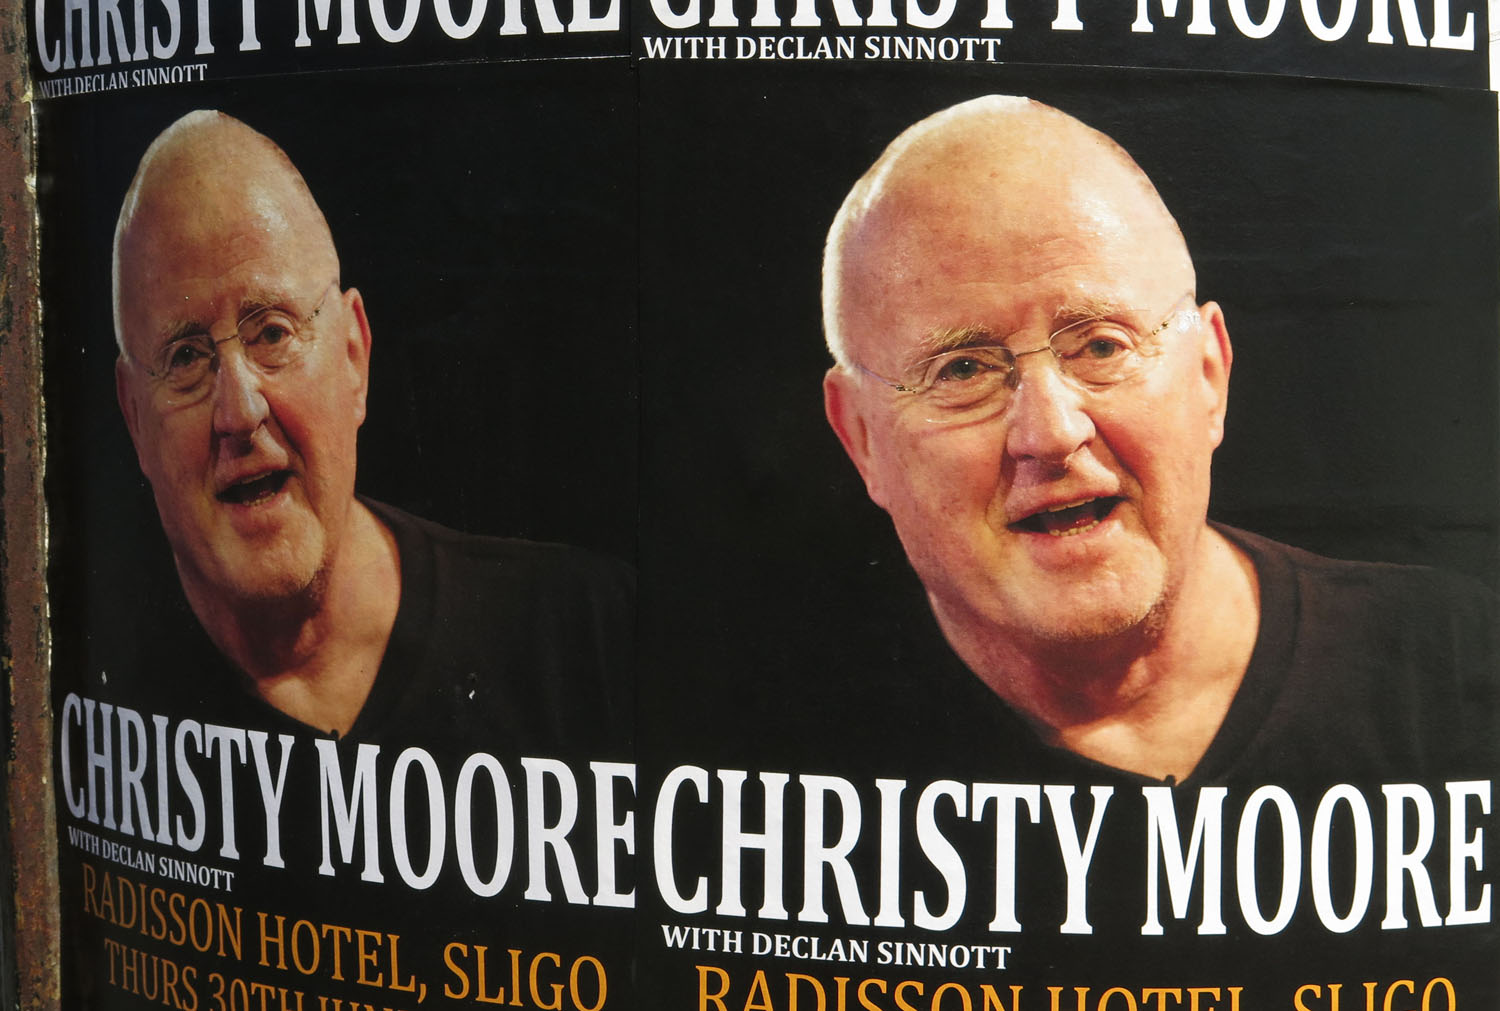 Ireland-Music-Christy-Moore